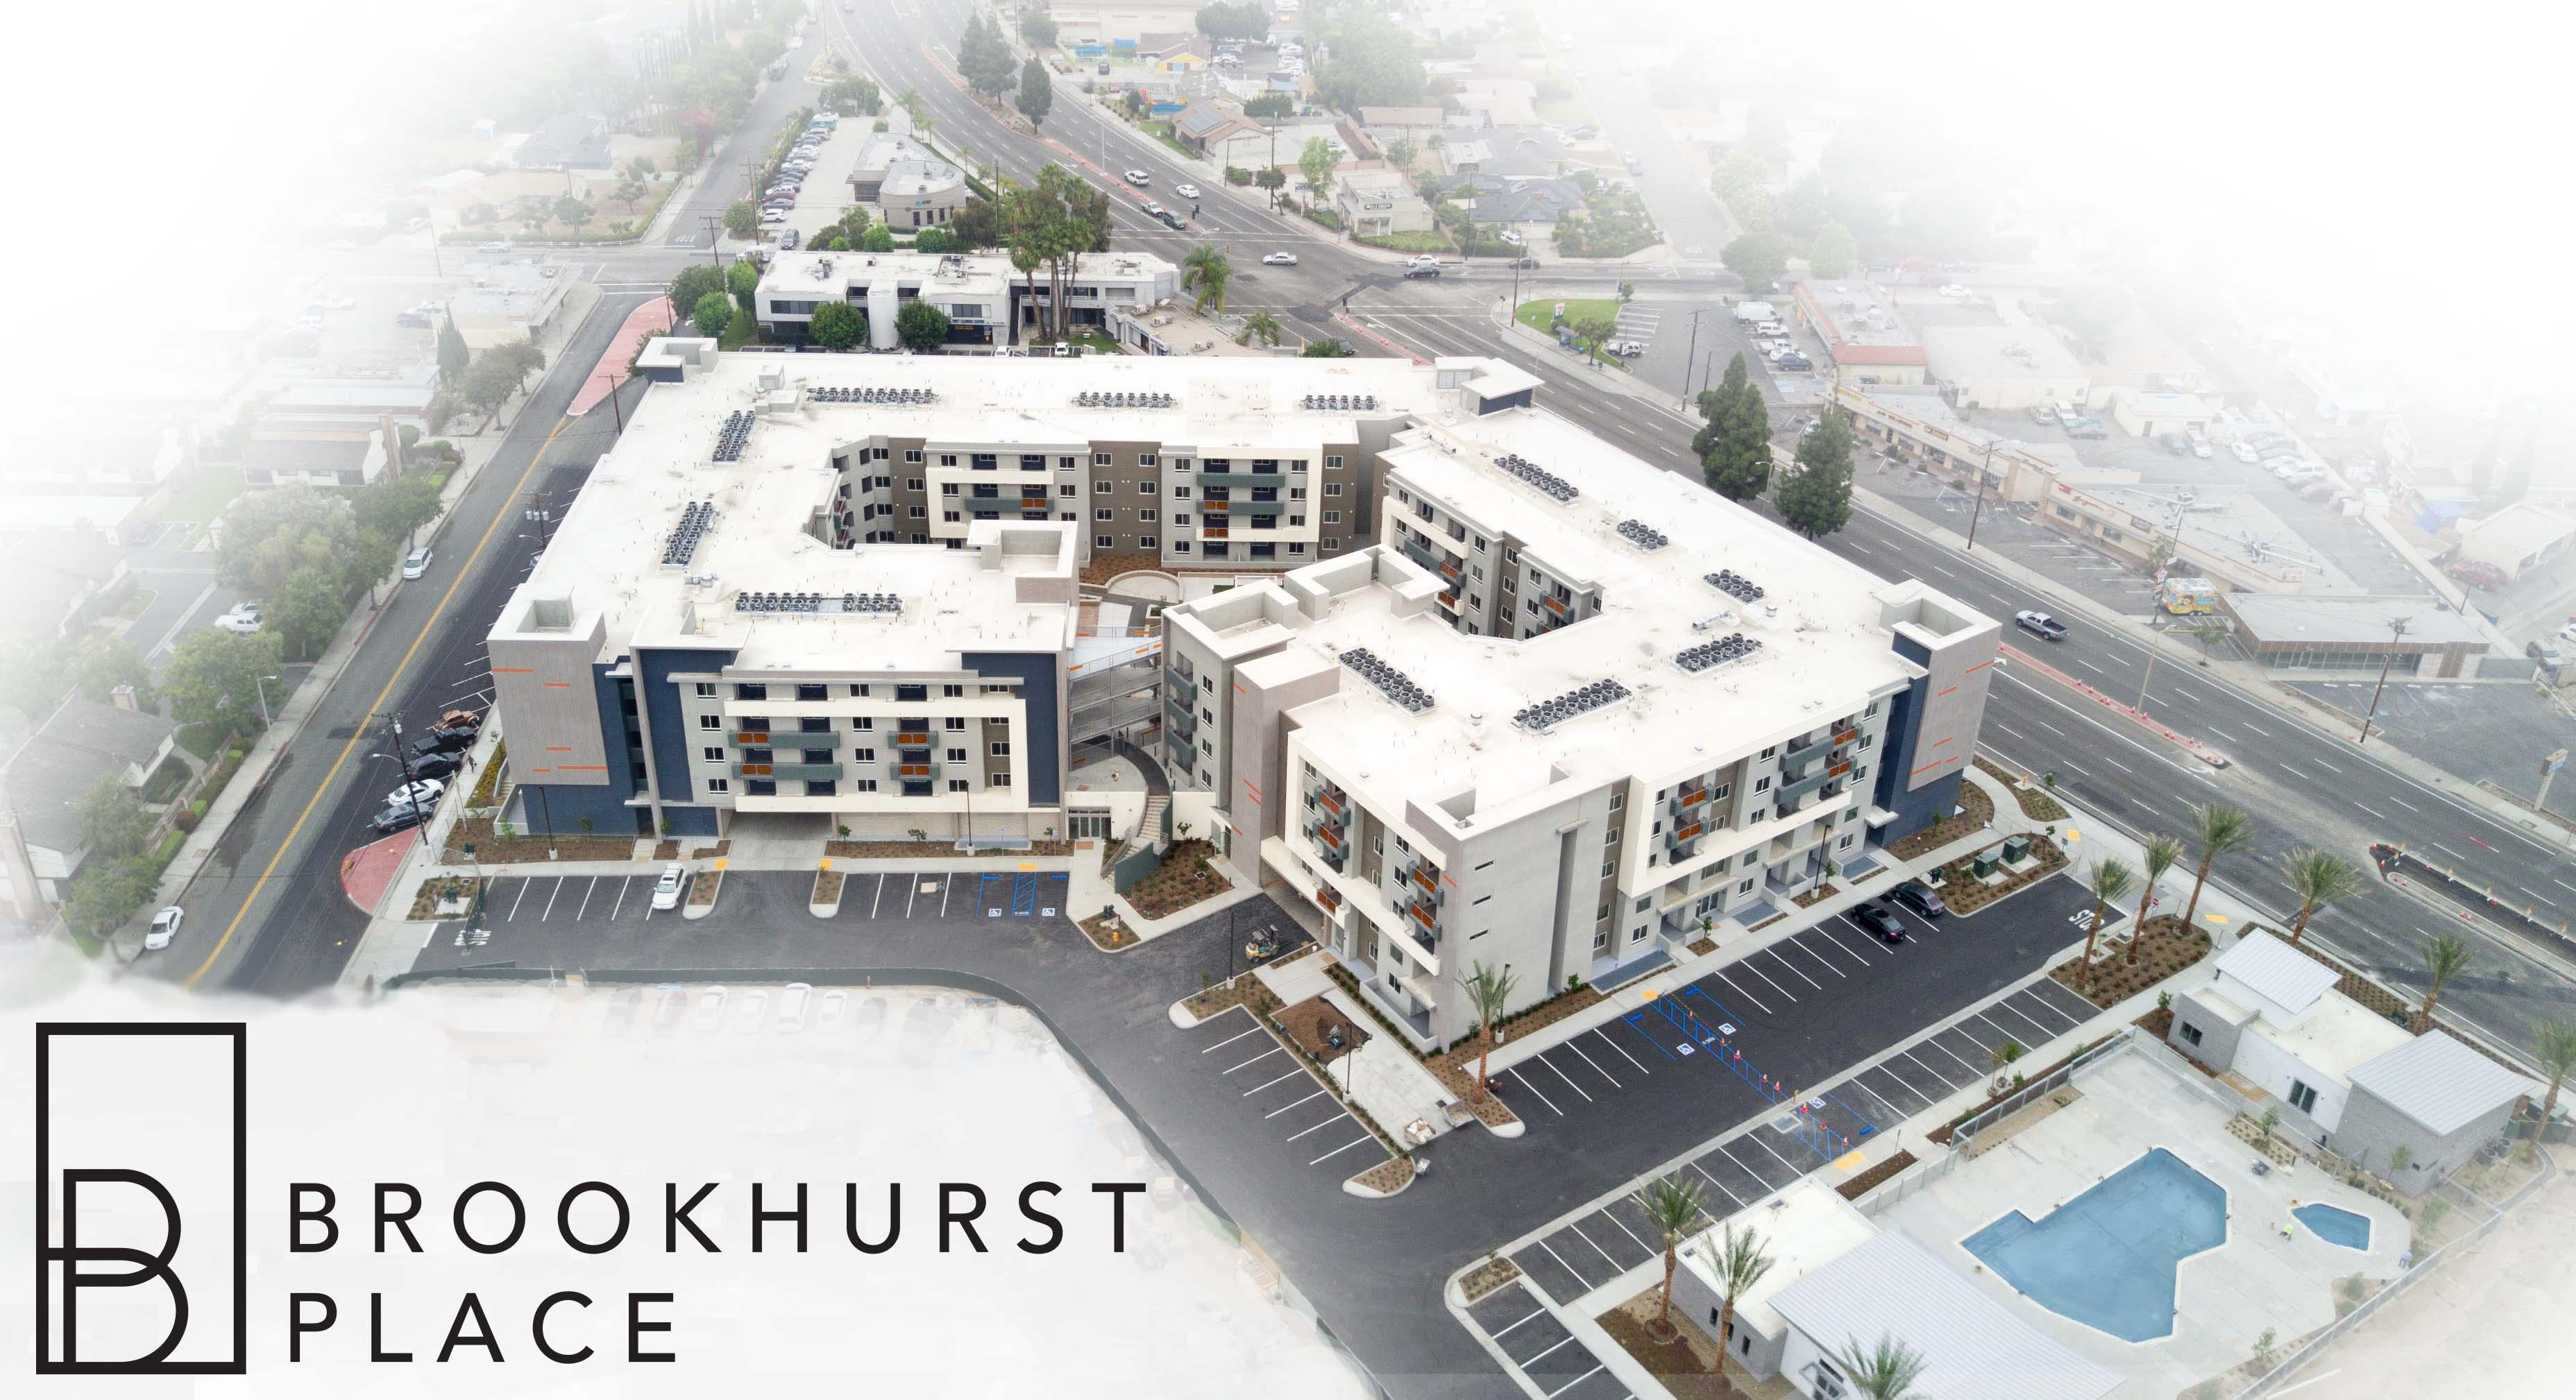 Photo of Phase I of Brookhurst Place development.